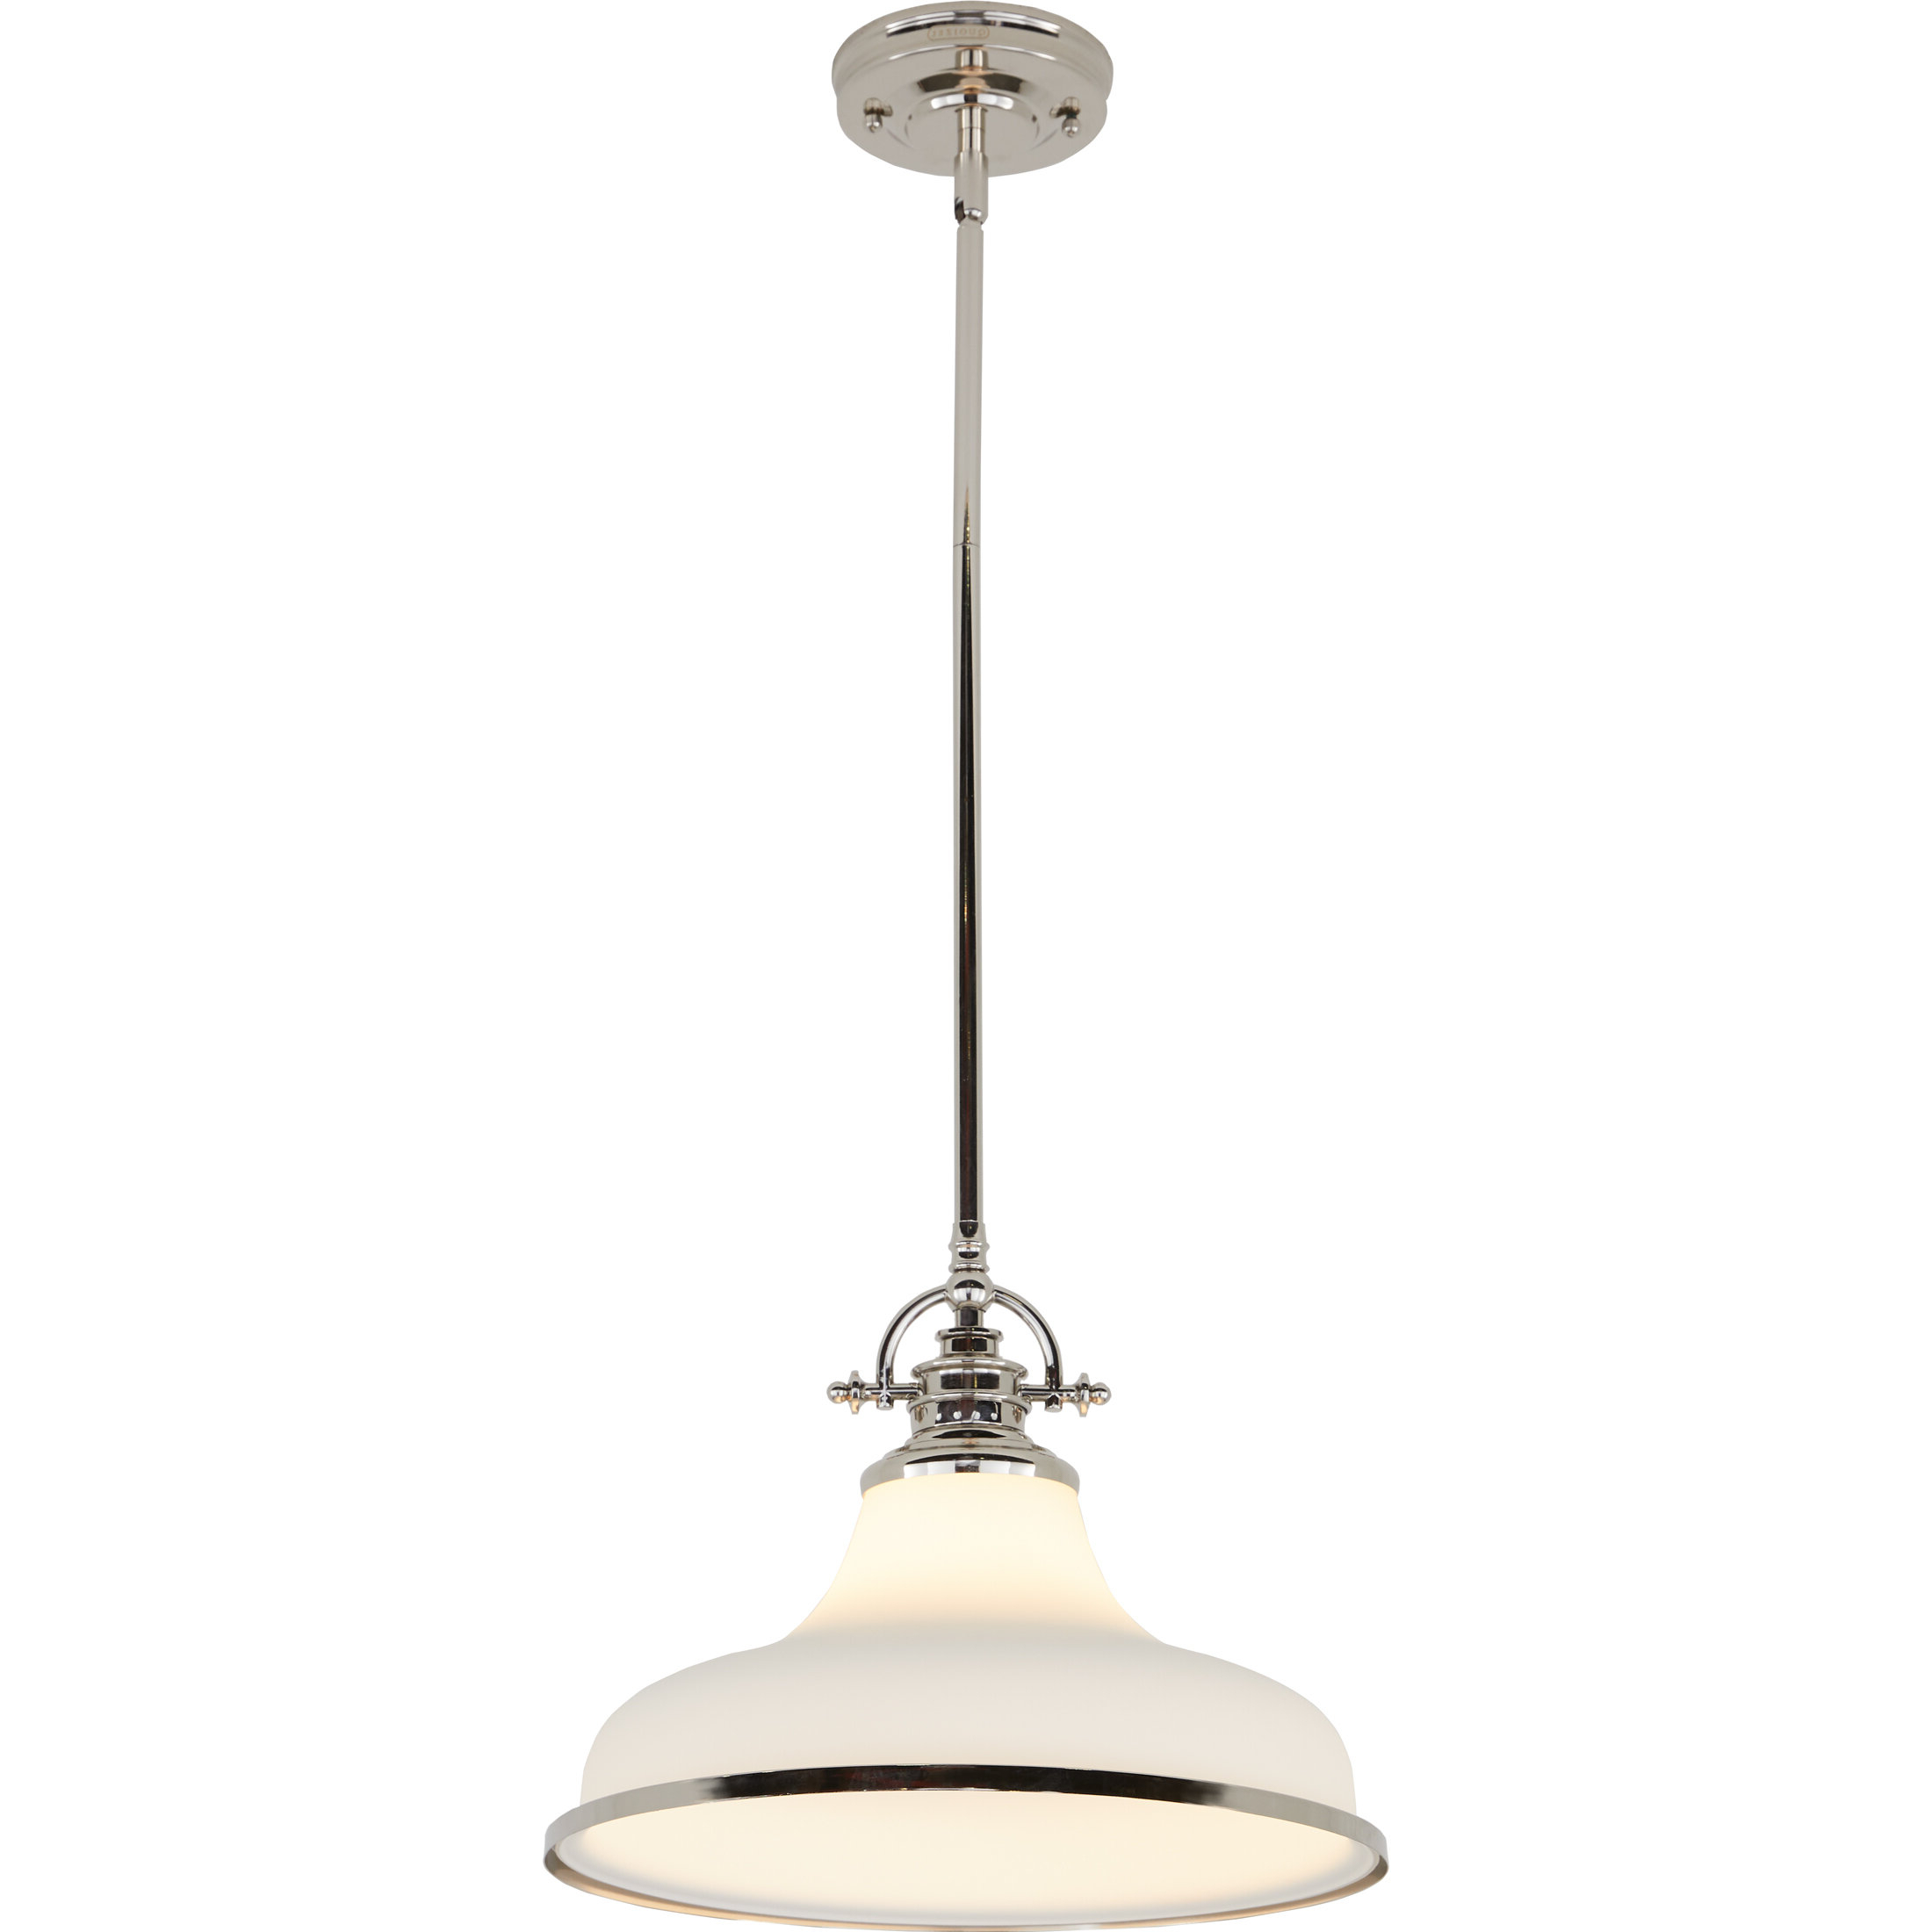 Macon 1 Light Single Dome Pendants Within Best And Newest Meghan 1 Light Dome Pendant (View 11 of 20)